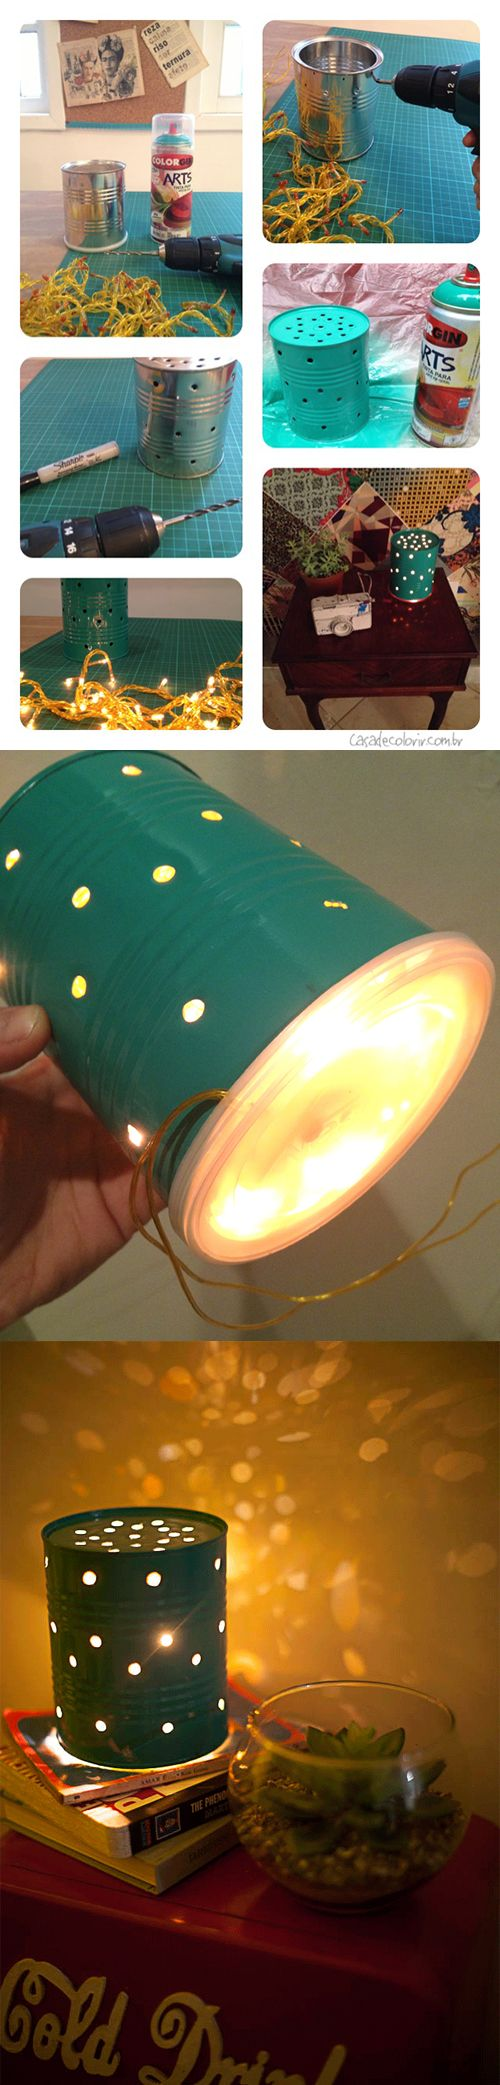 Make a Fire Fly Night Light